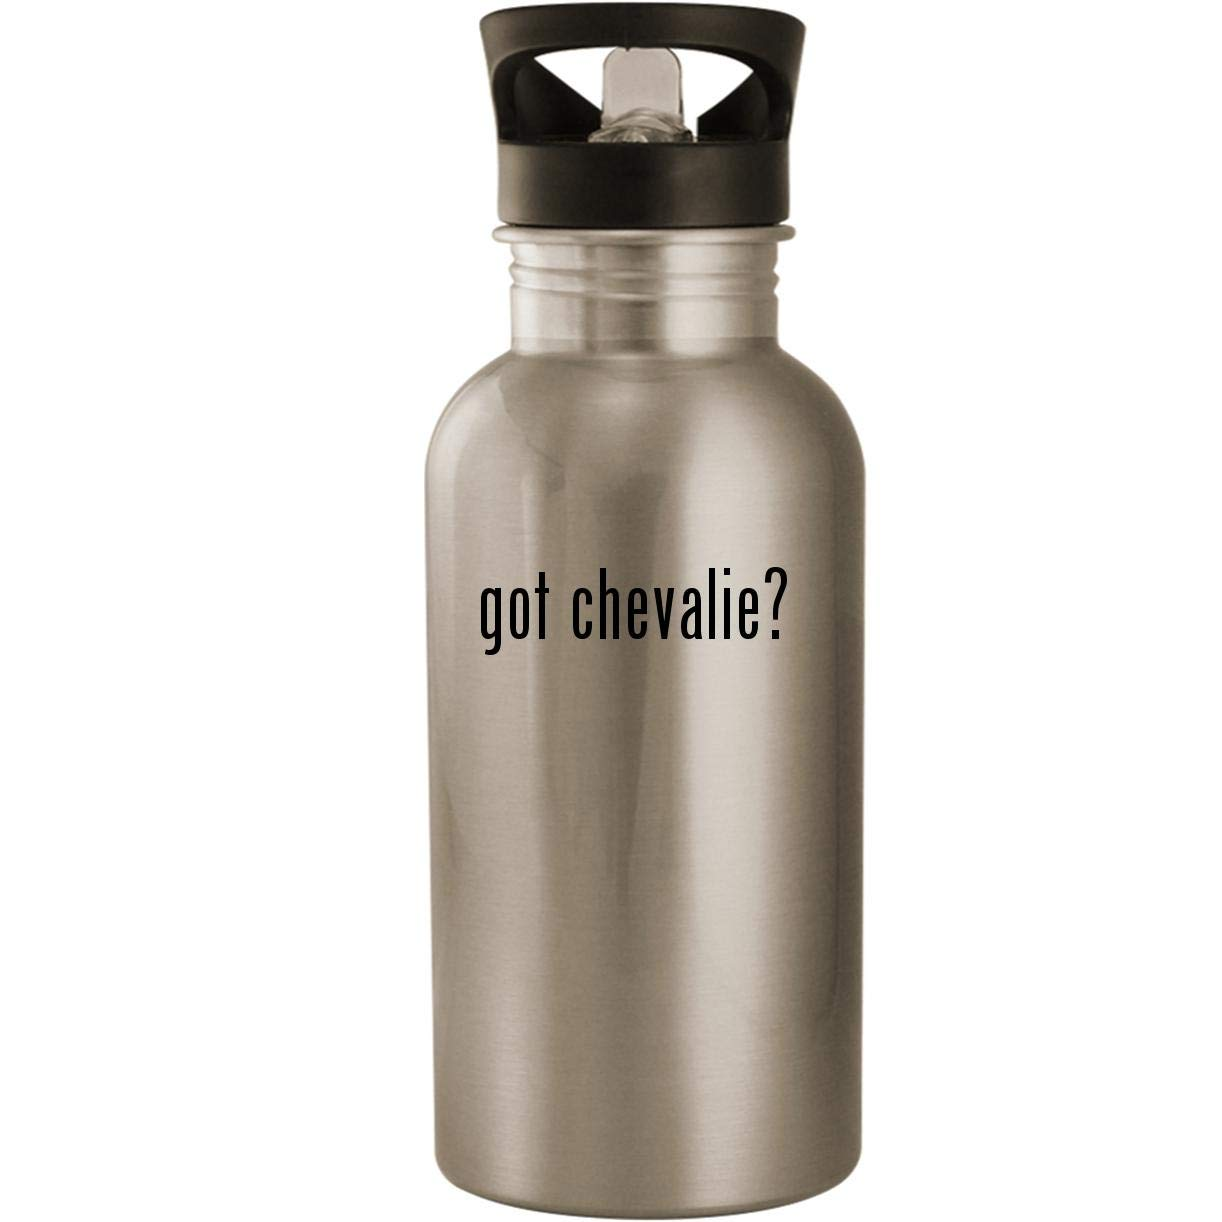 got chevalie? - Stainless Steel 20oz Road Ready Water Bottle, Silver